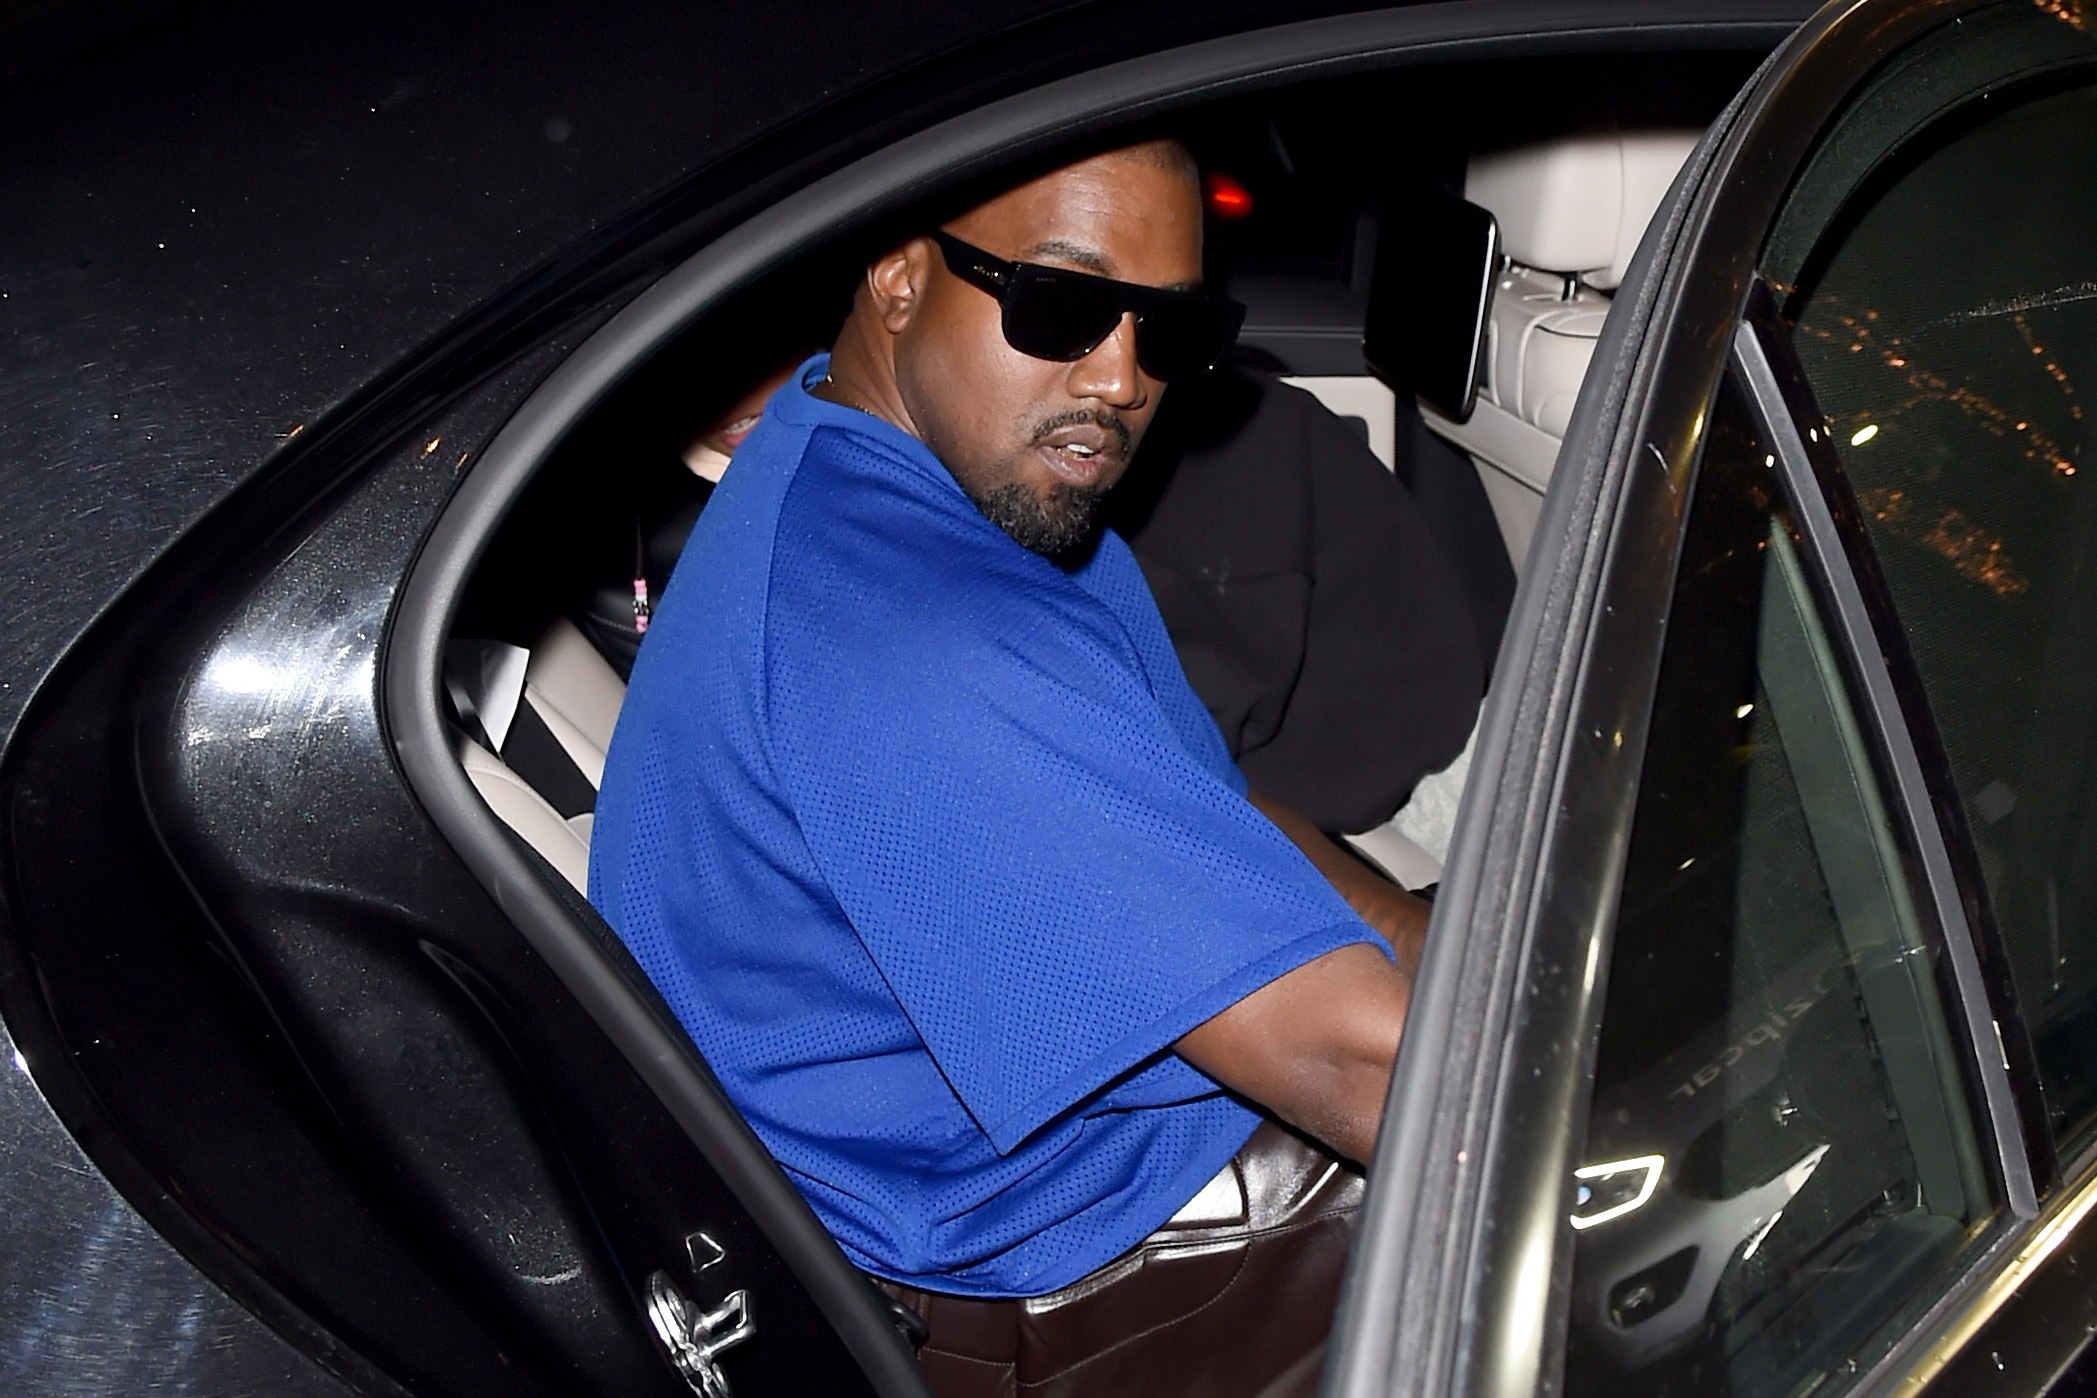 Kanye West's 'Donda' listening party features DaBaby, Marilyn Manson, Kim K